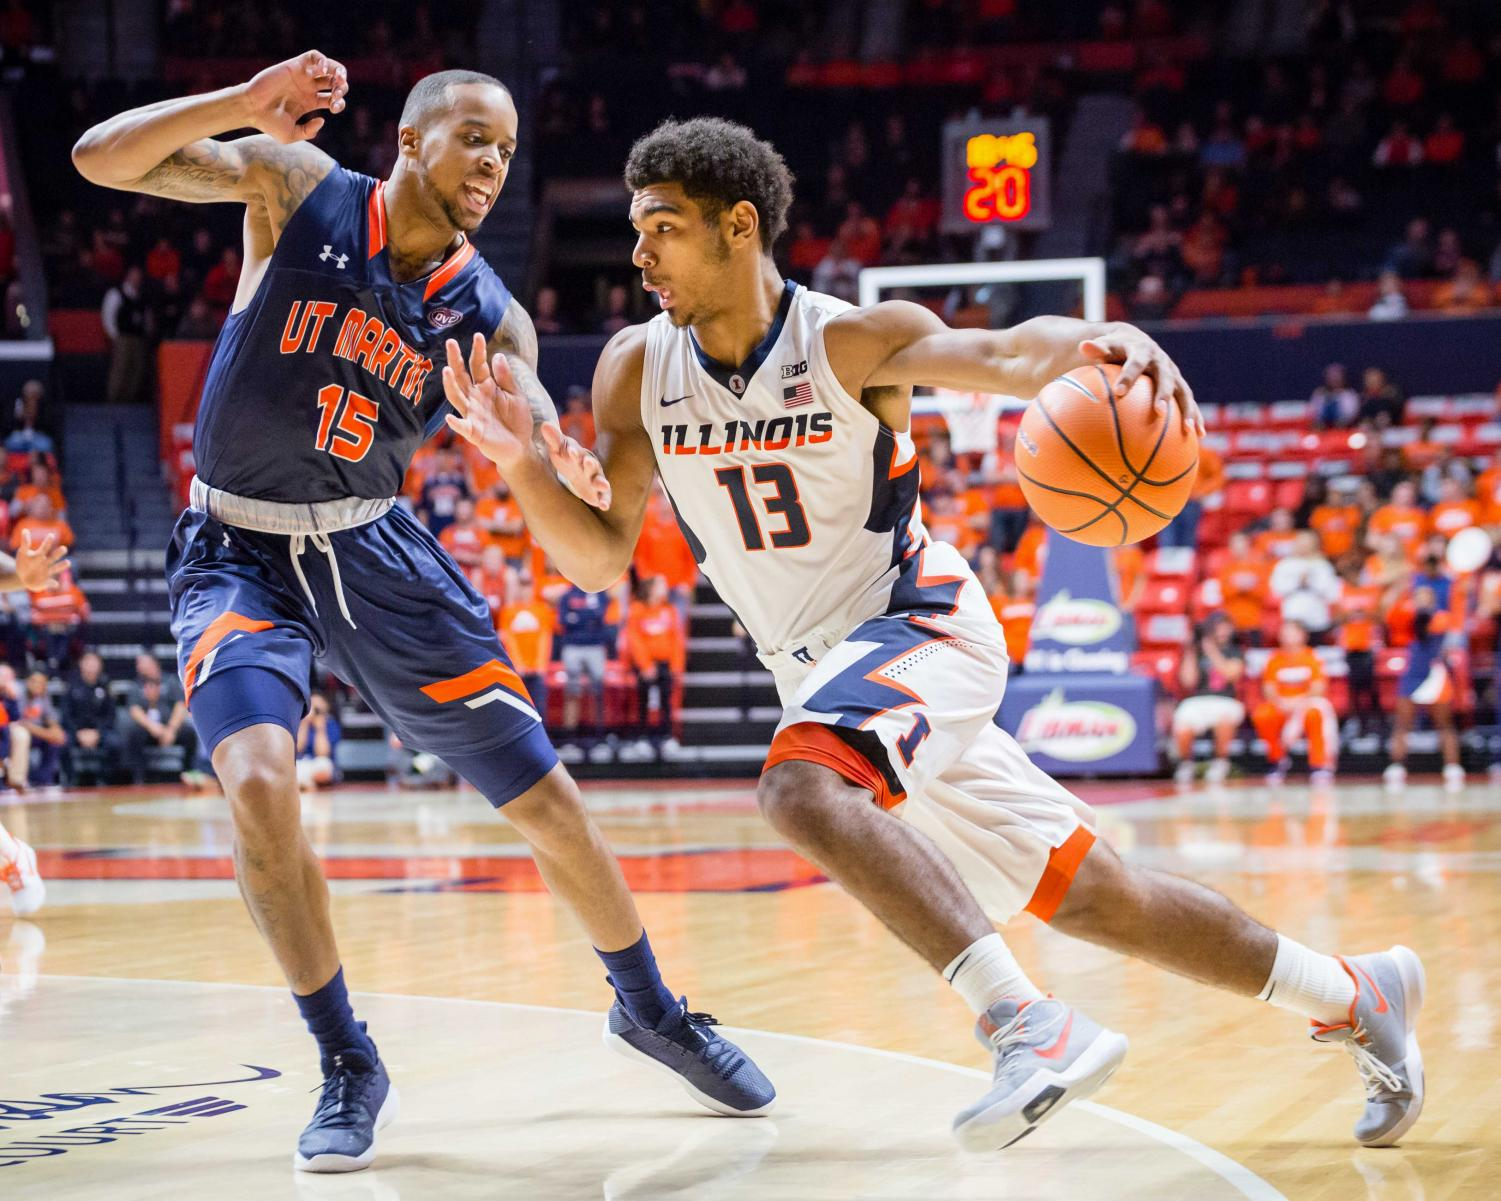 Illinois guard Mark Smith (13) drives to the basket during the game against Tennessee-Martin at State Farm Center on Sunday, Nov. 12, 2017. The Illini won 77-74.